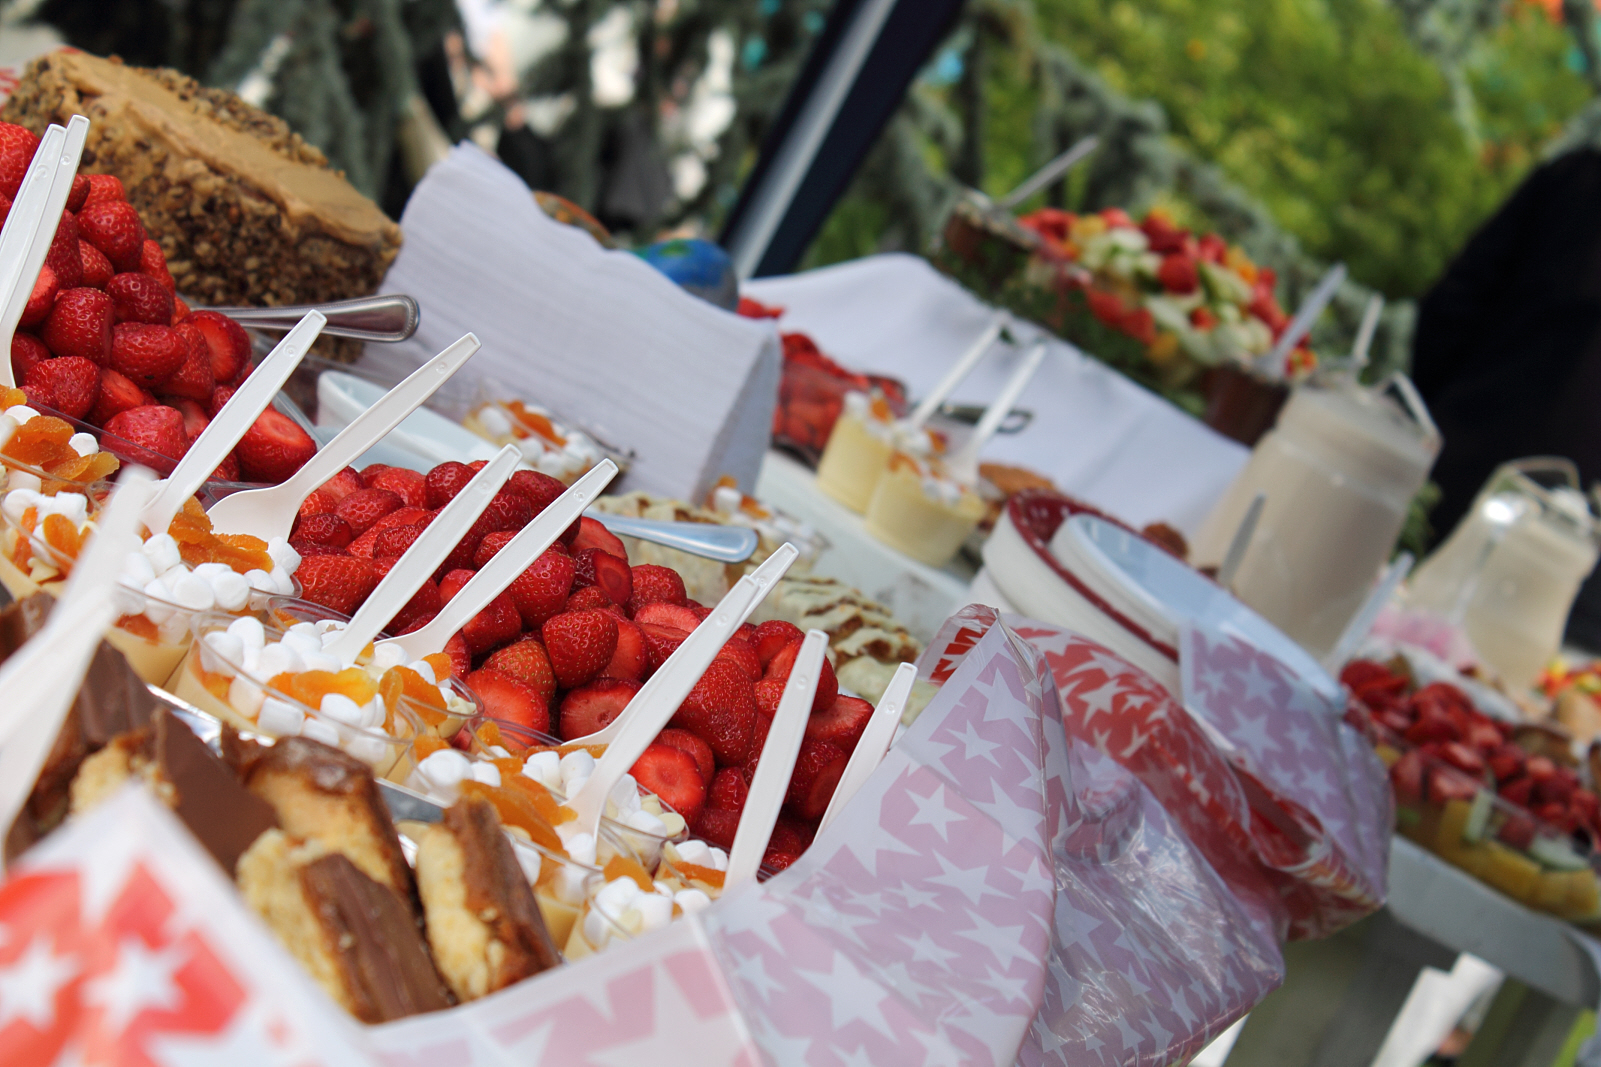 Executive Direct can look after all your outdoor catering requirements